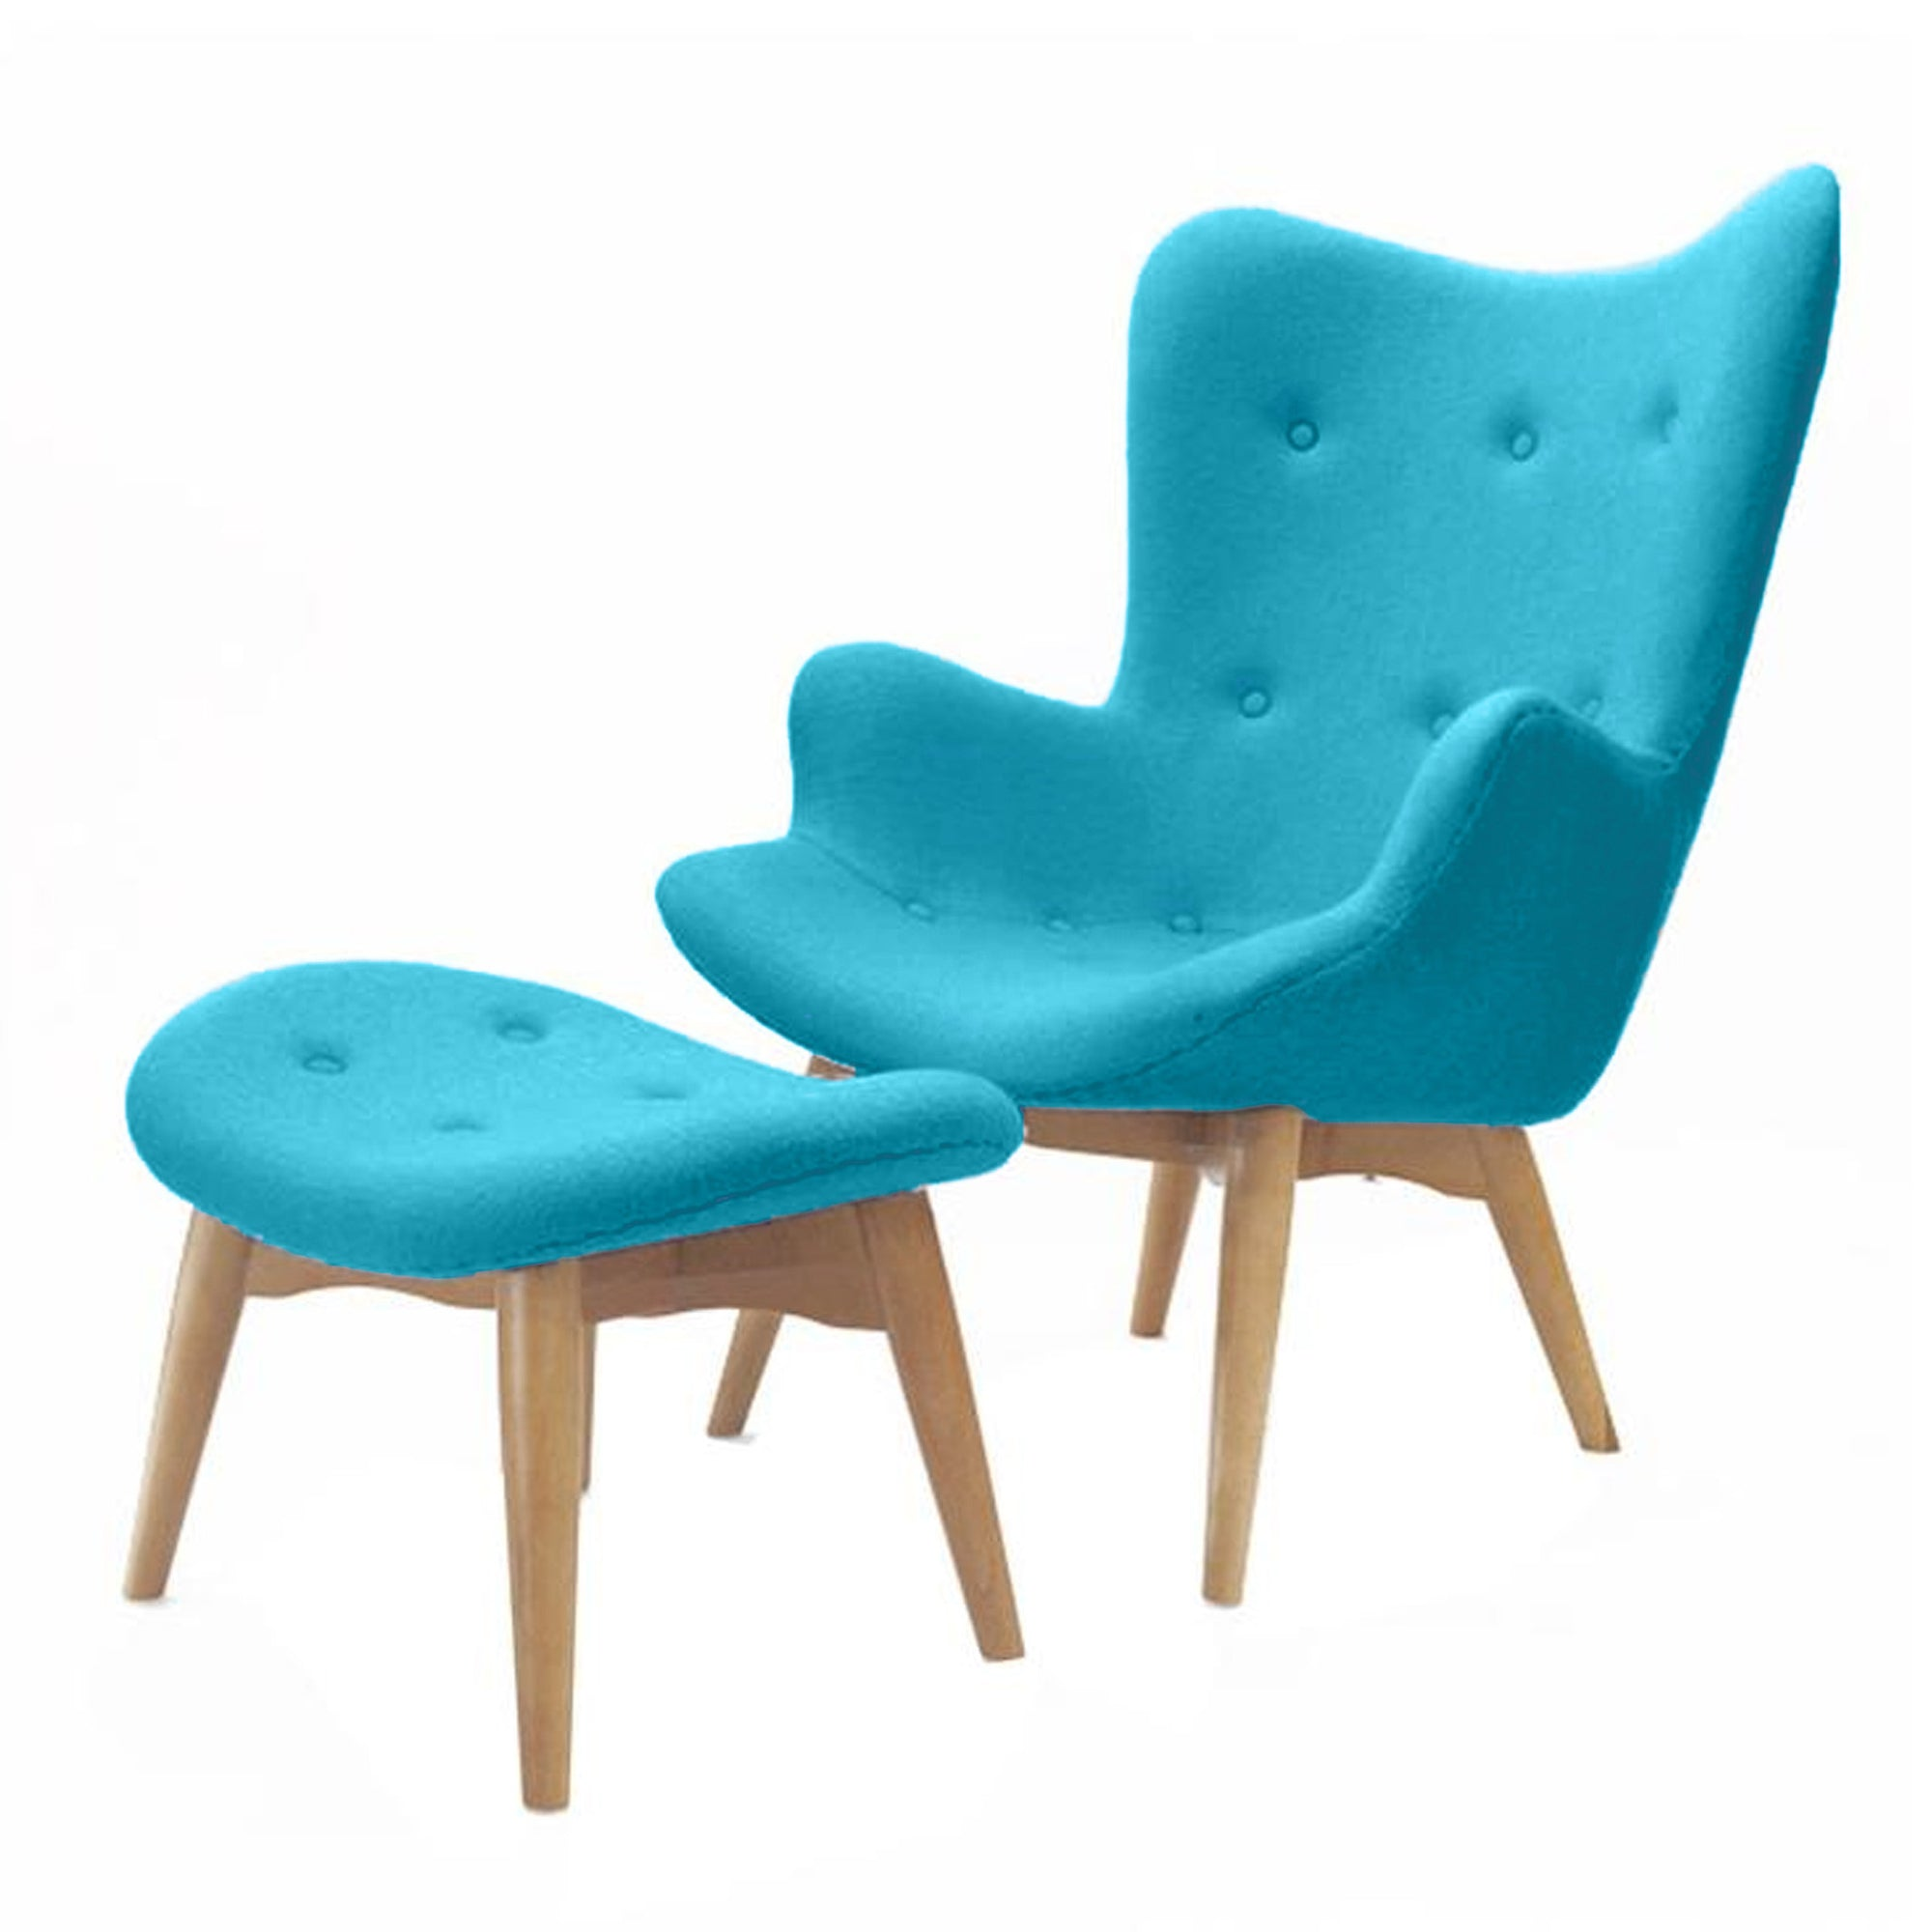 Lounge Chair and Ottoman BP8125-BL-TR -  كرسي صالة عثماني - Shop Online Furniture and Home Decor Store in Dubai, UAE at ebarza